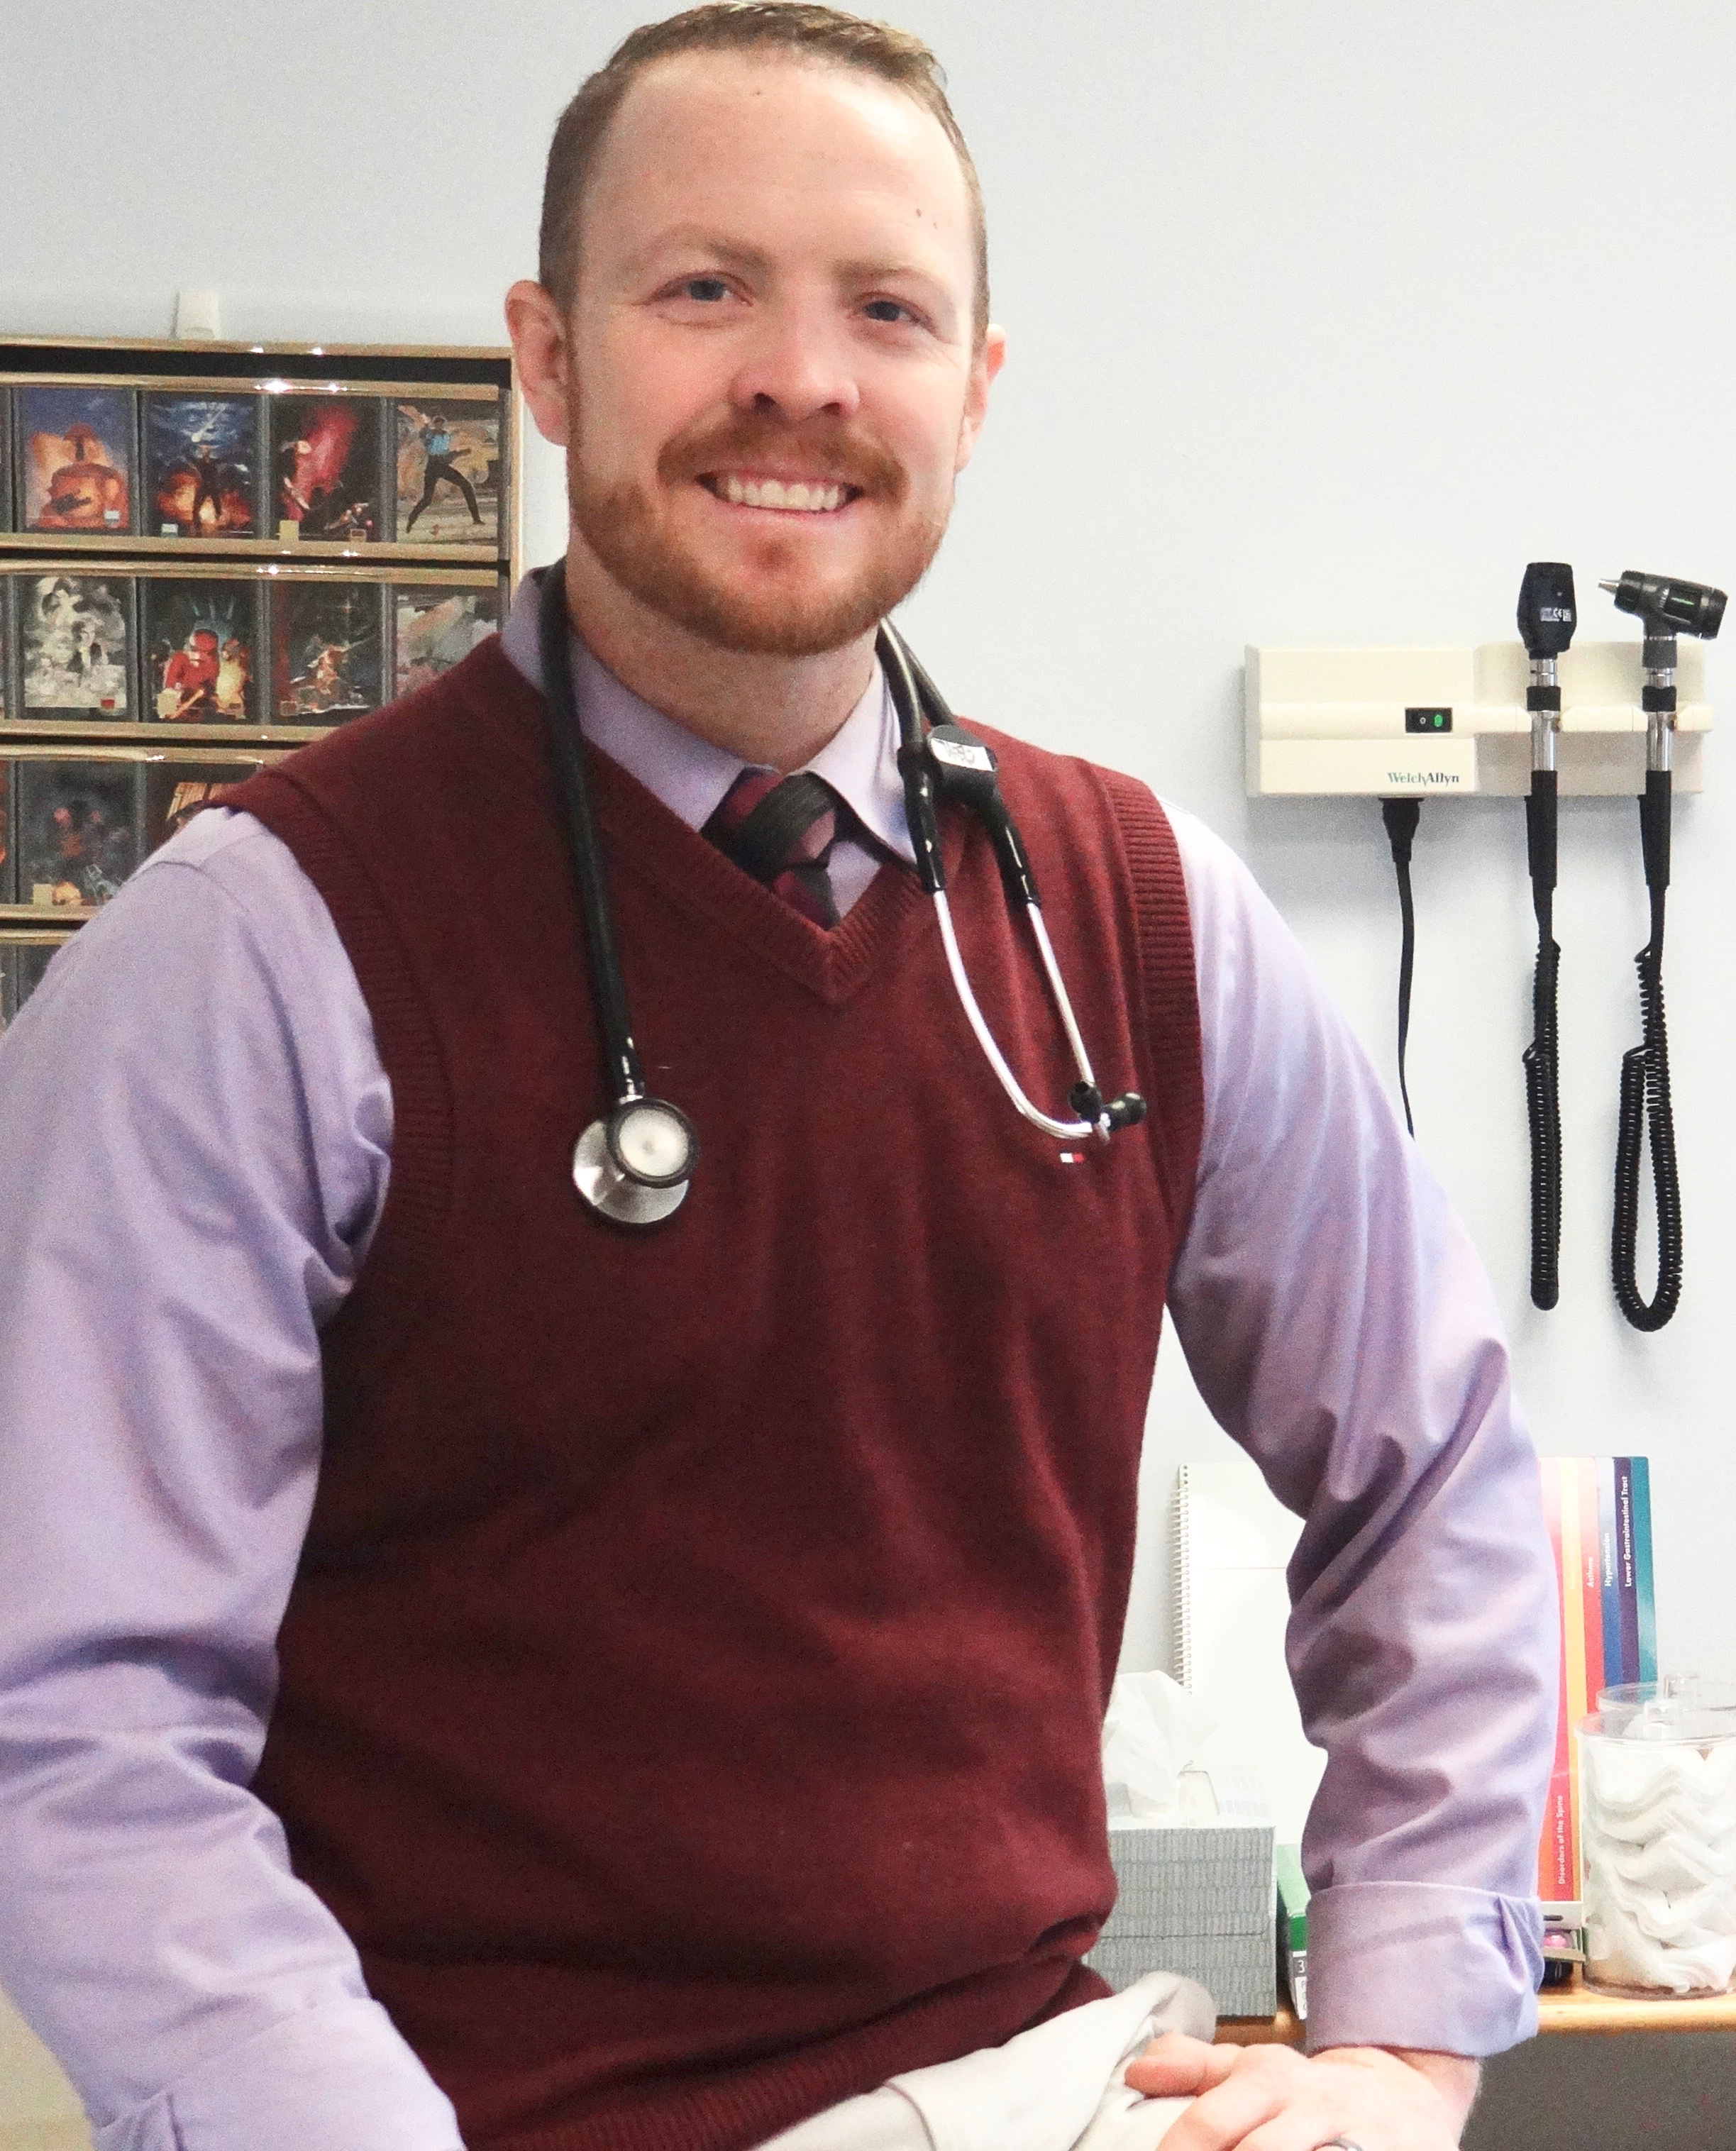 Member Spotlight: Beyond Primary Care